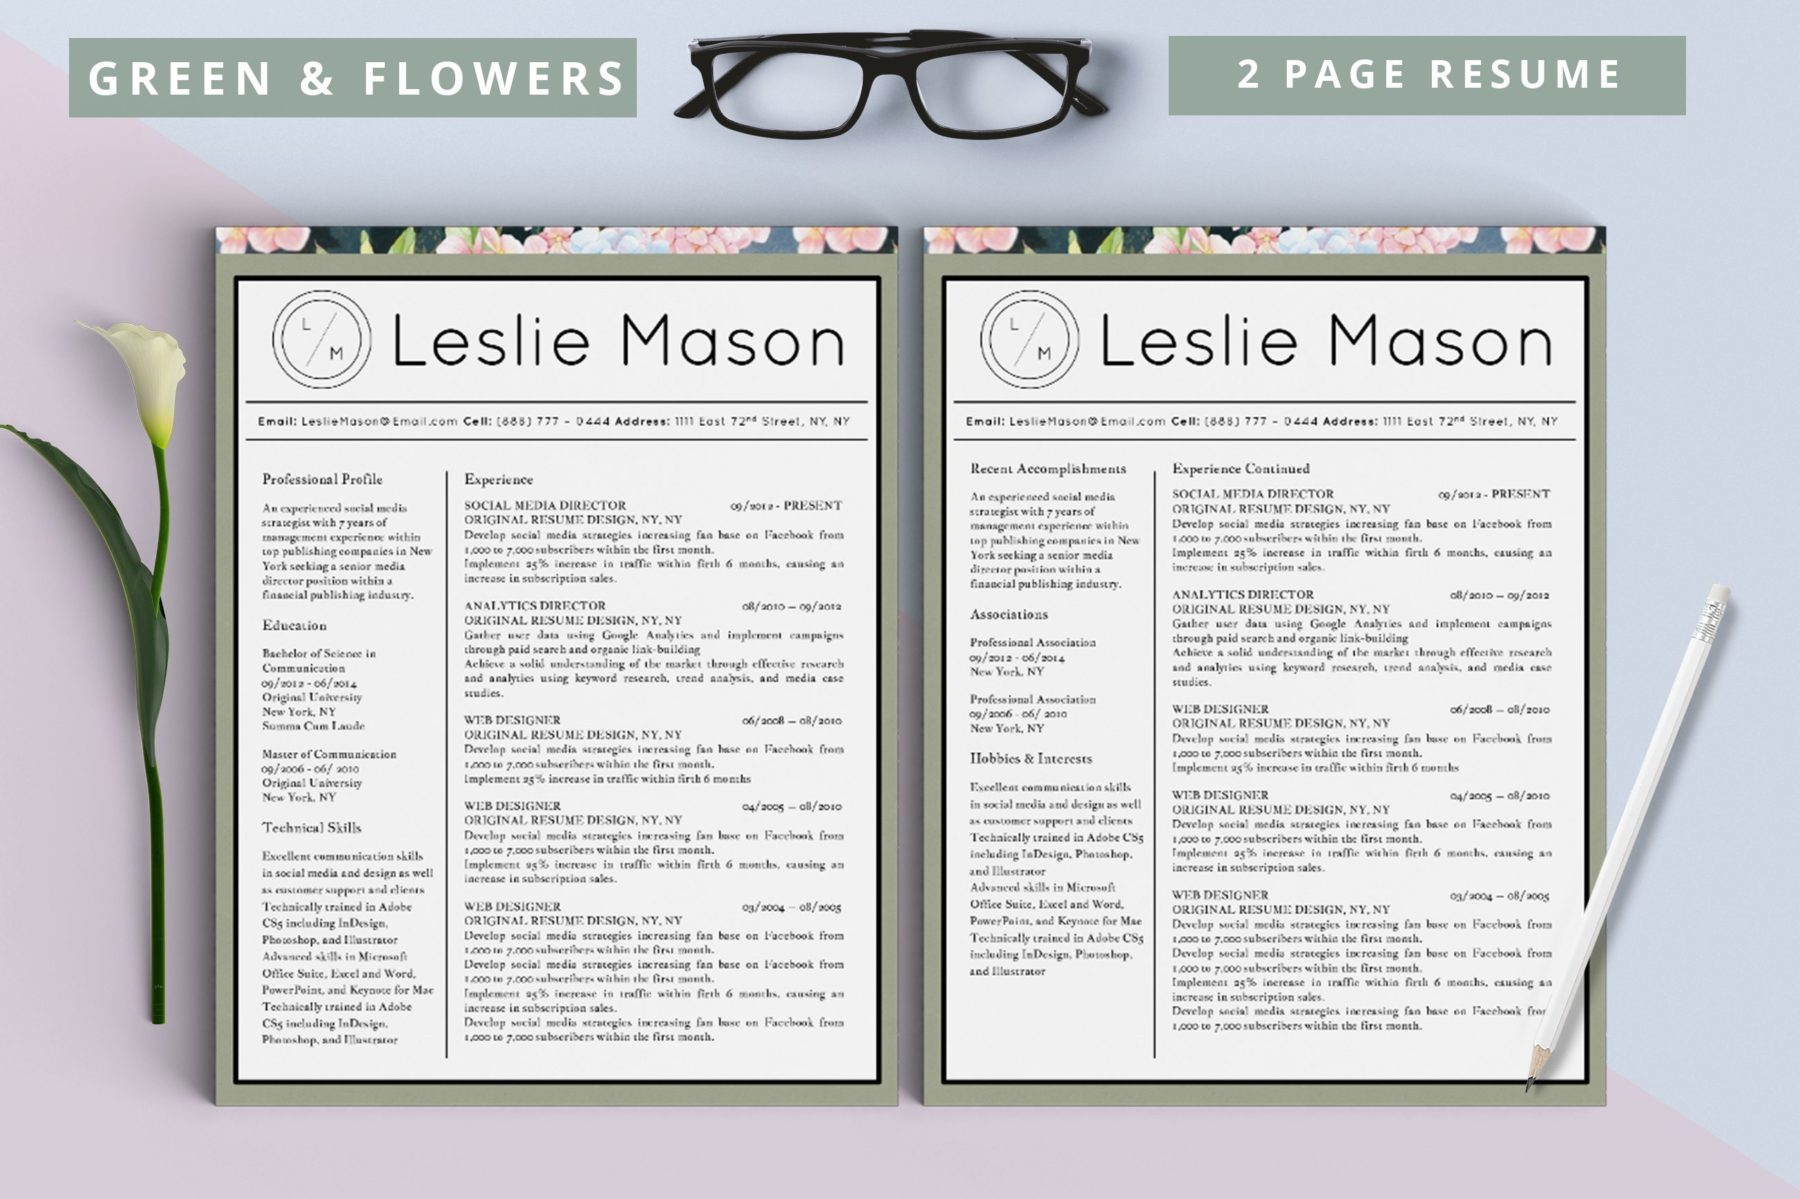 Leslie Mason Beautiful Resume  Pack  Stand Out Shop